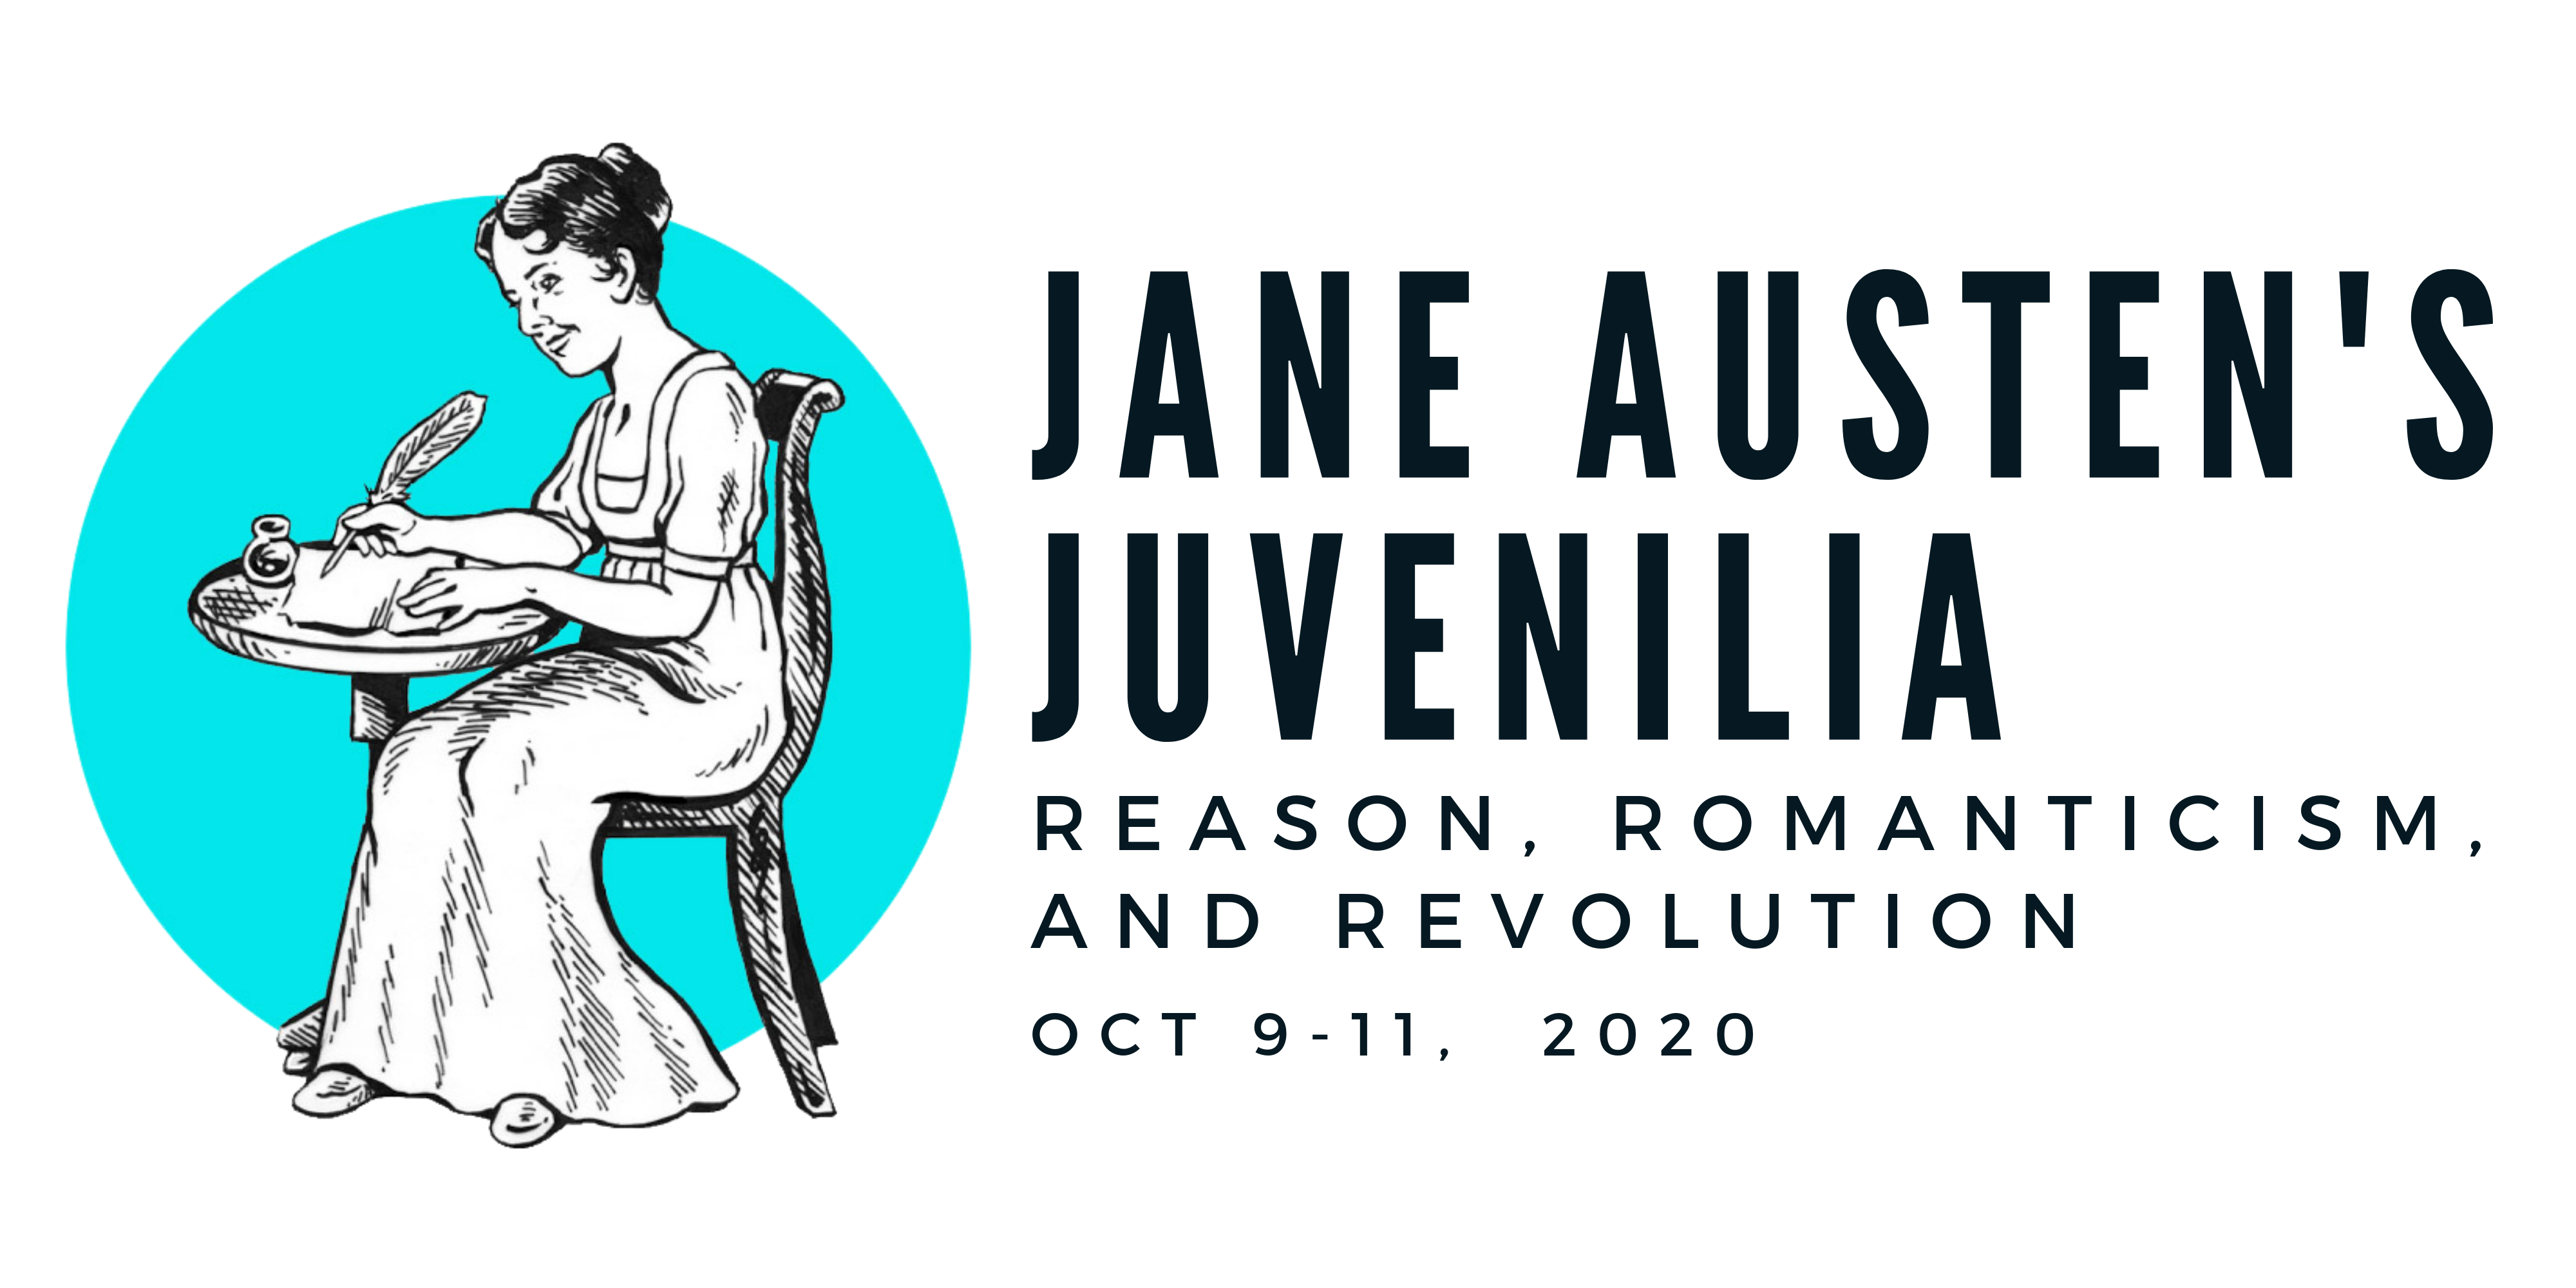 JASNA 2020 AGM - Jane Austen's Juvenilia:  Reason, Romanticism, and Revolution - A Virtual Event @ Cleveland, Ohio